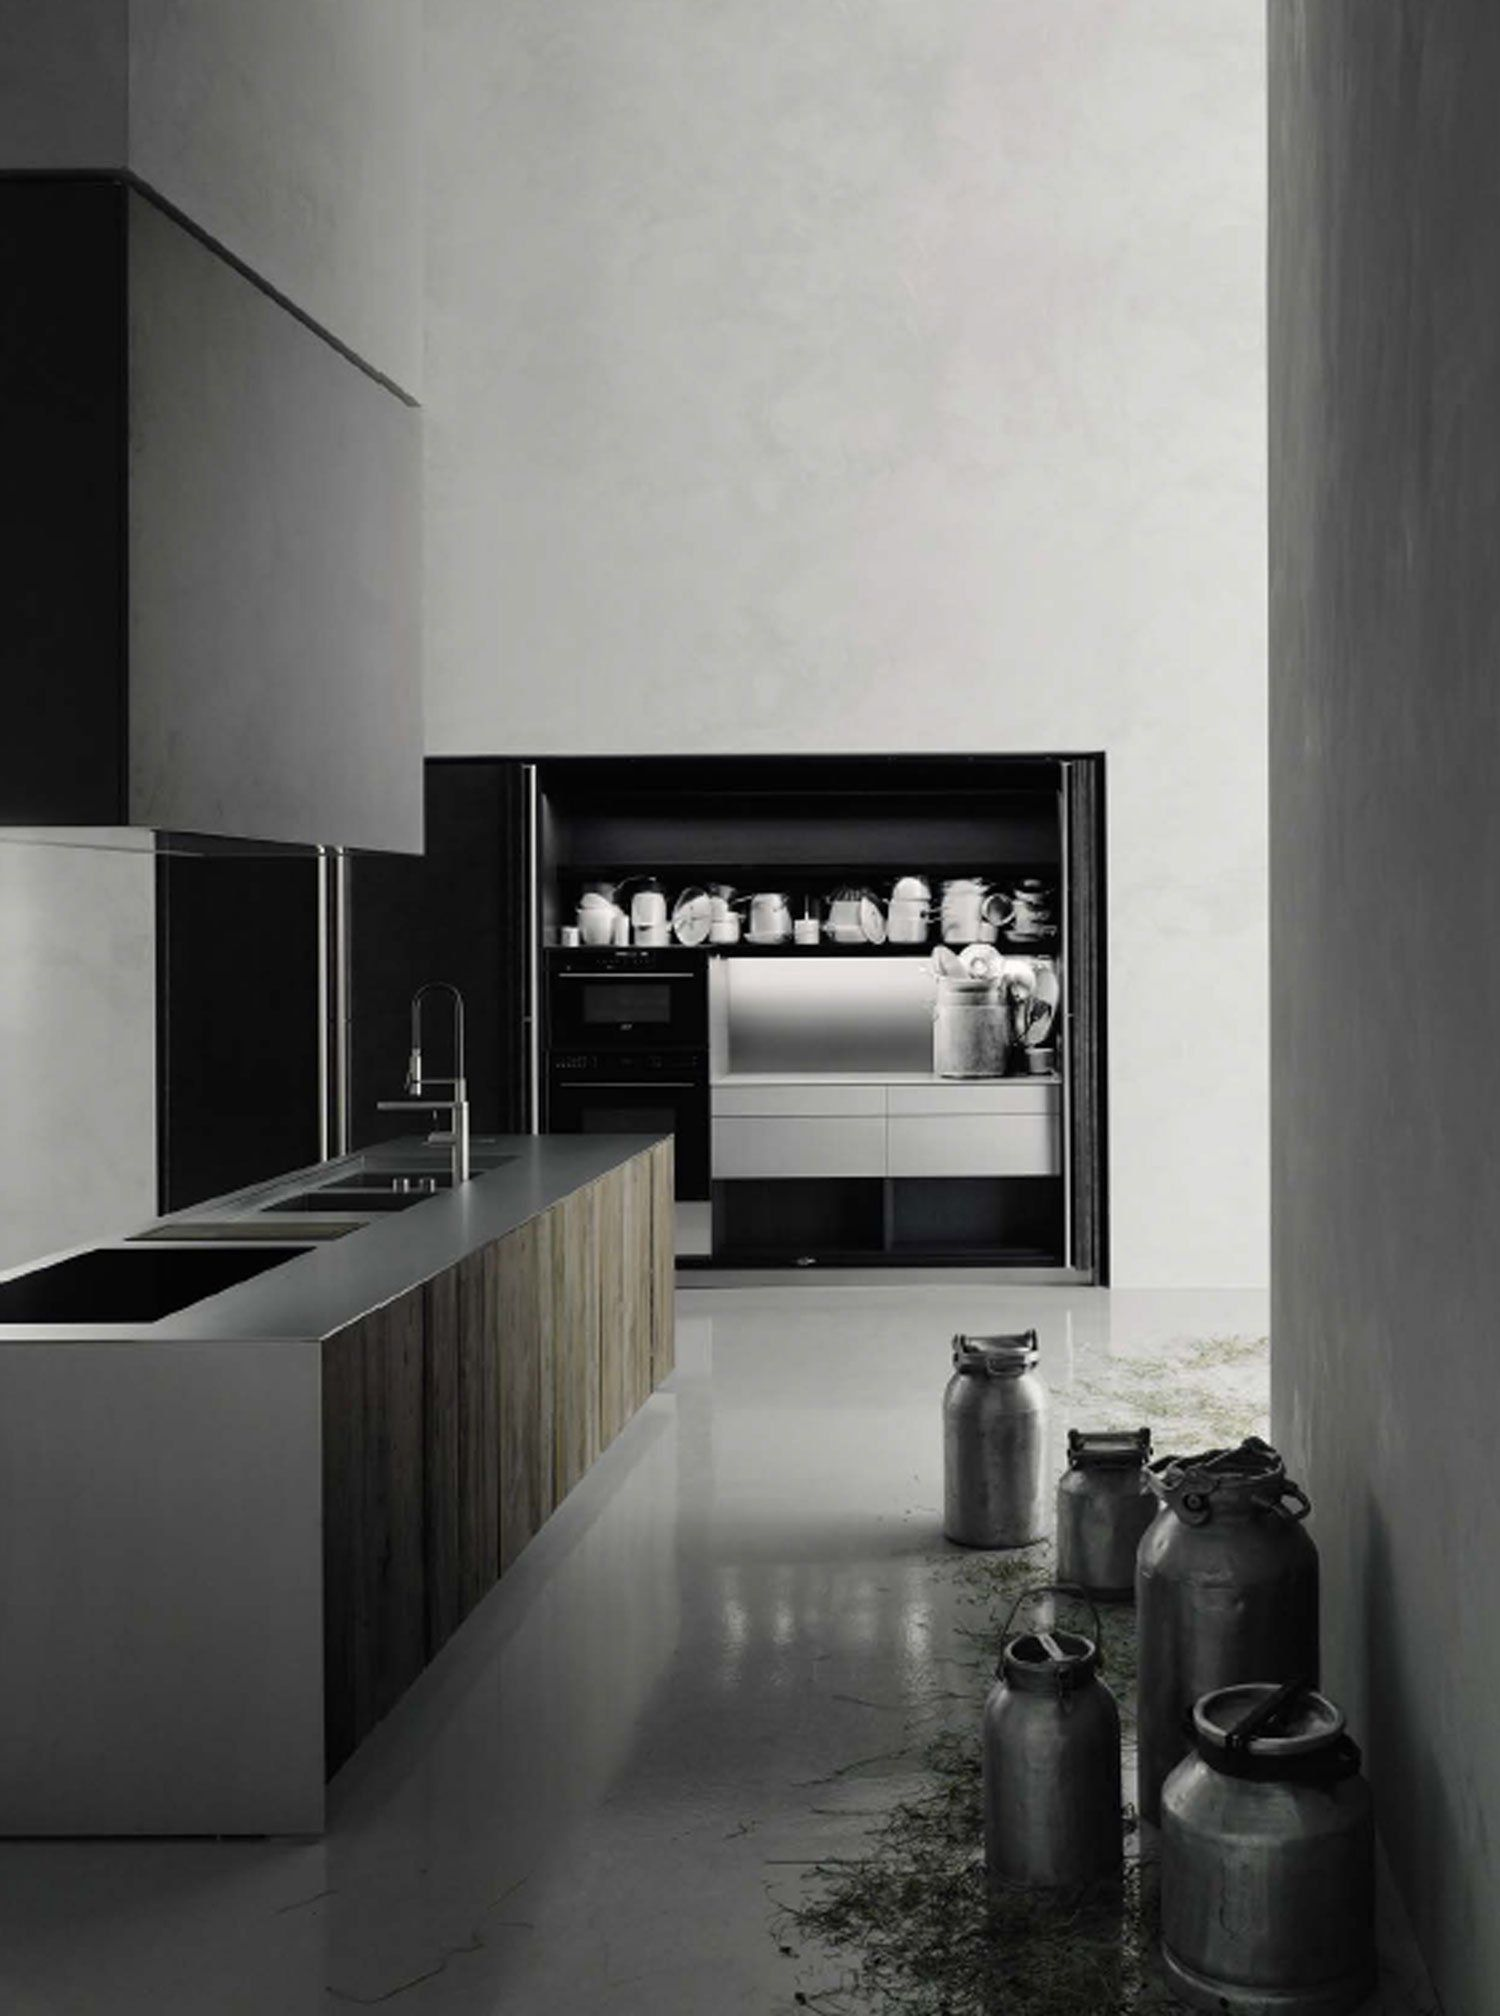 Boffi Köln Boffi Kitchenology 2015 Campaign Koolkitch2 Dining Kitchen